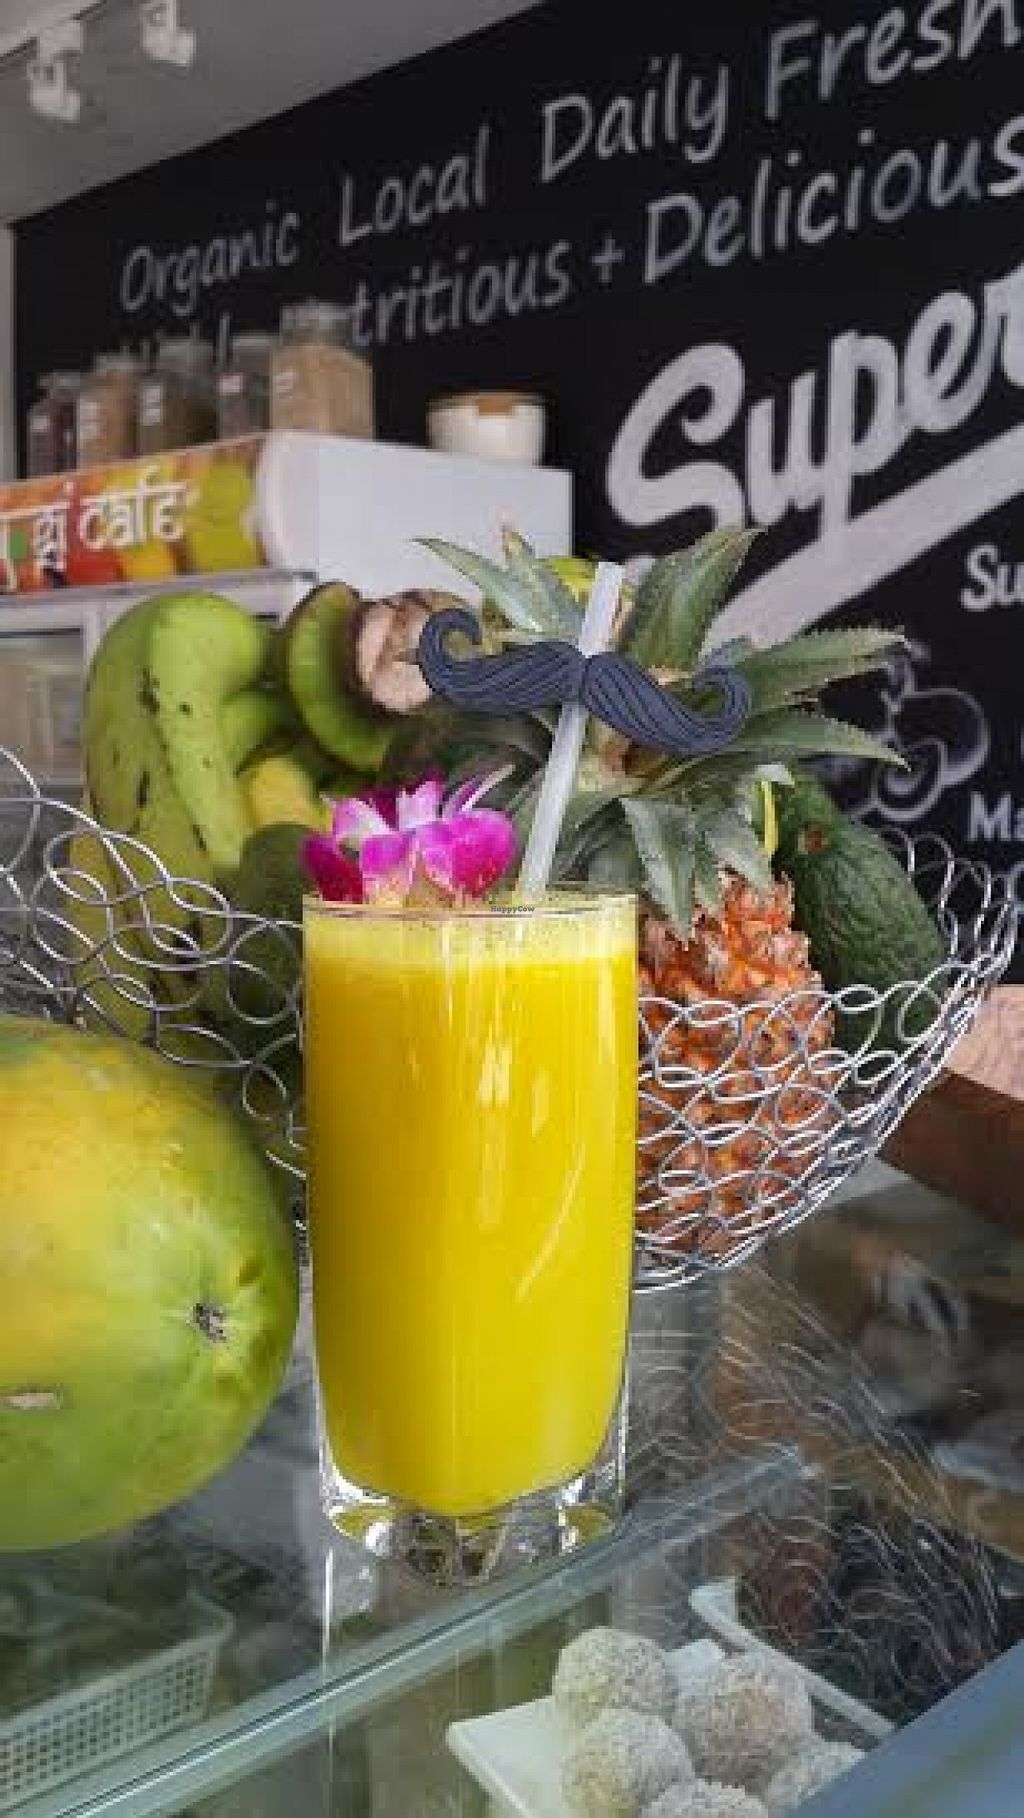 """Photo of Yogi Cafe  by <a href=""""/members/profile/yogi%20cafe"""">yogi cafe</a> <br/>slow juices  <br/> September 25, 2015  - <a href='/contact/abuse/image/63690/119094'>Report</a>"""